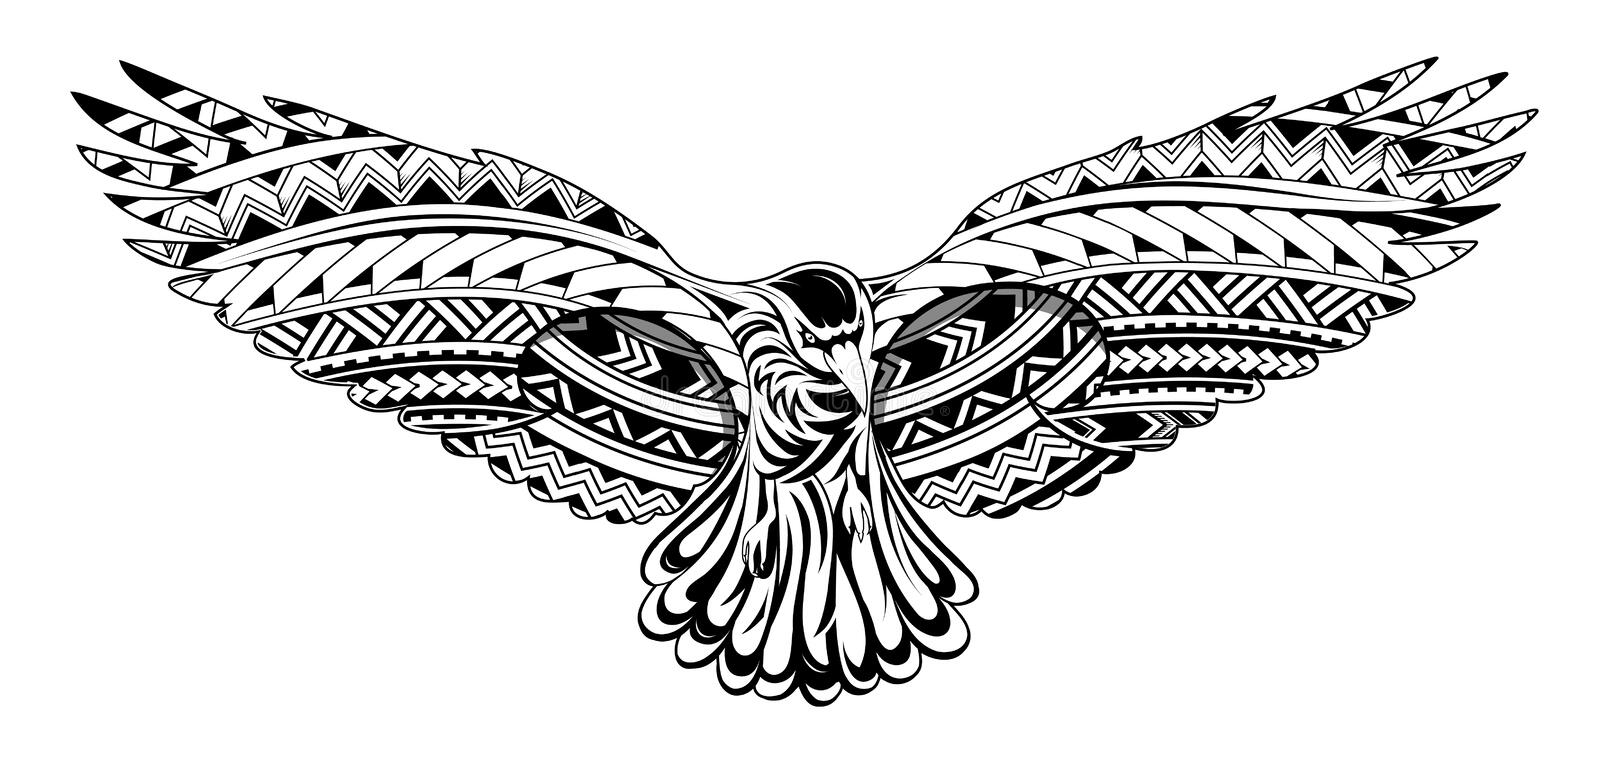 Crow Tattoo With Maori Style Ornaments Stock Vector